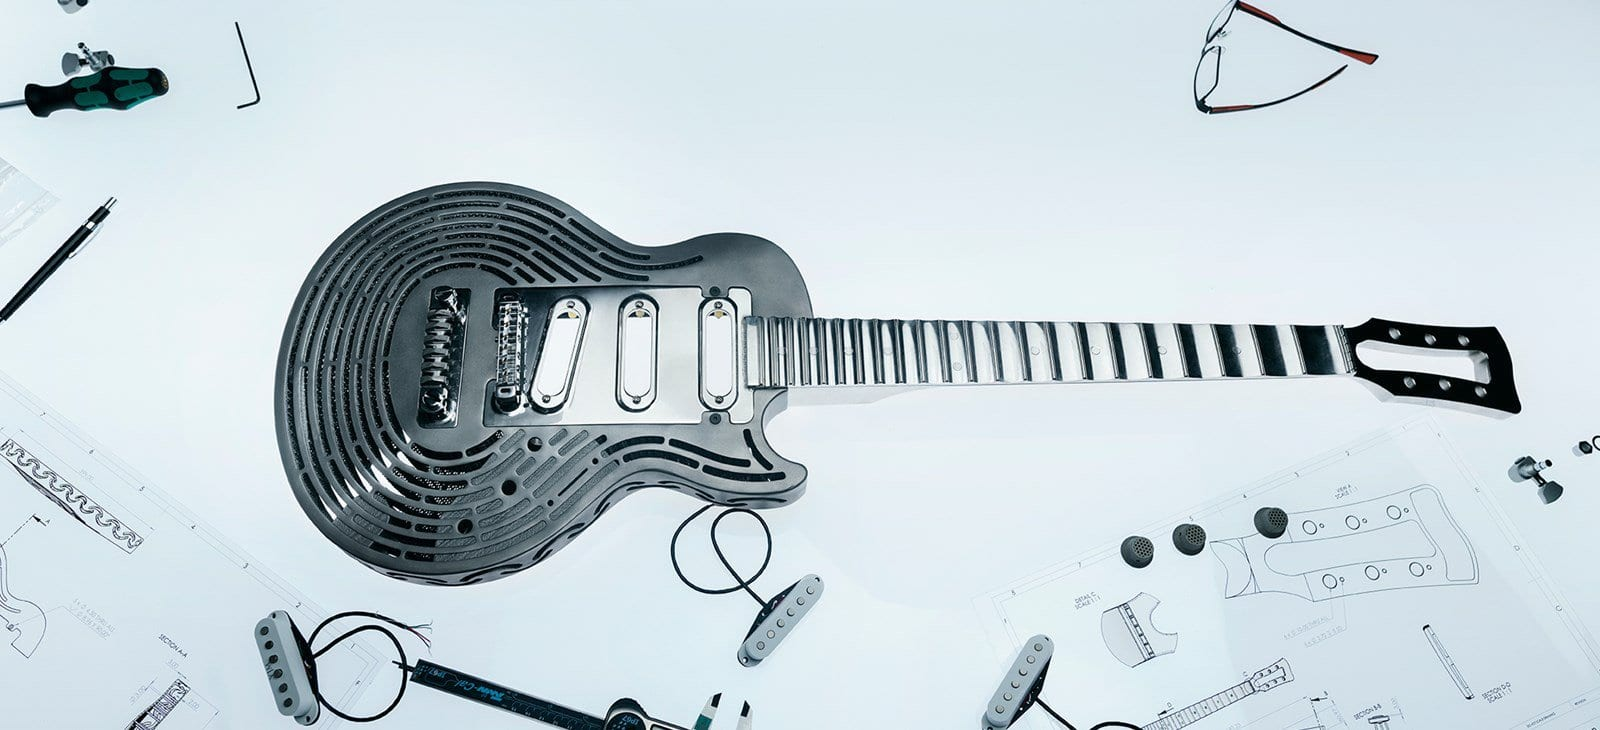 Sandvik has made the world's first smash-proof guitar!